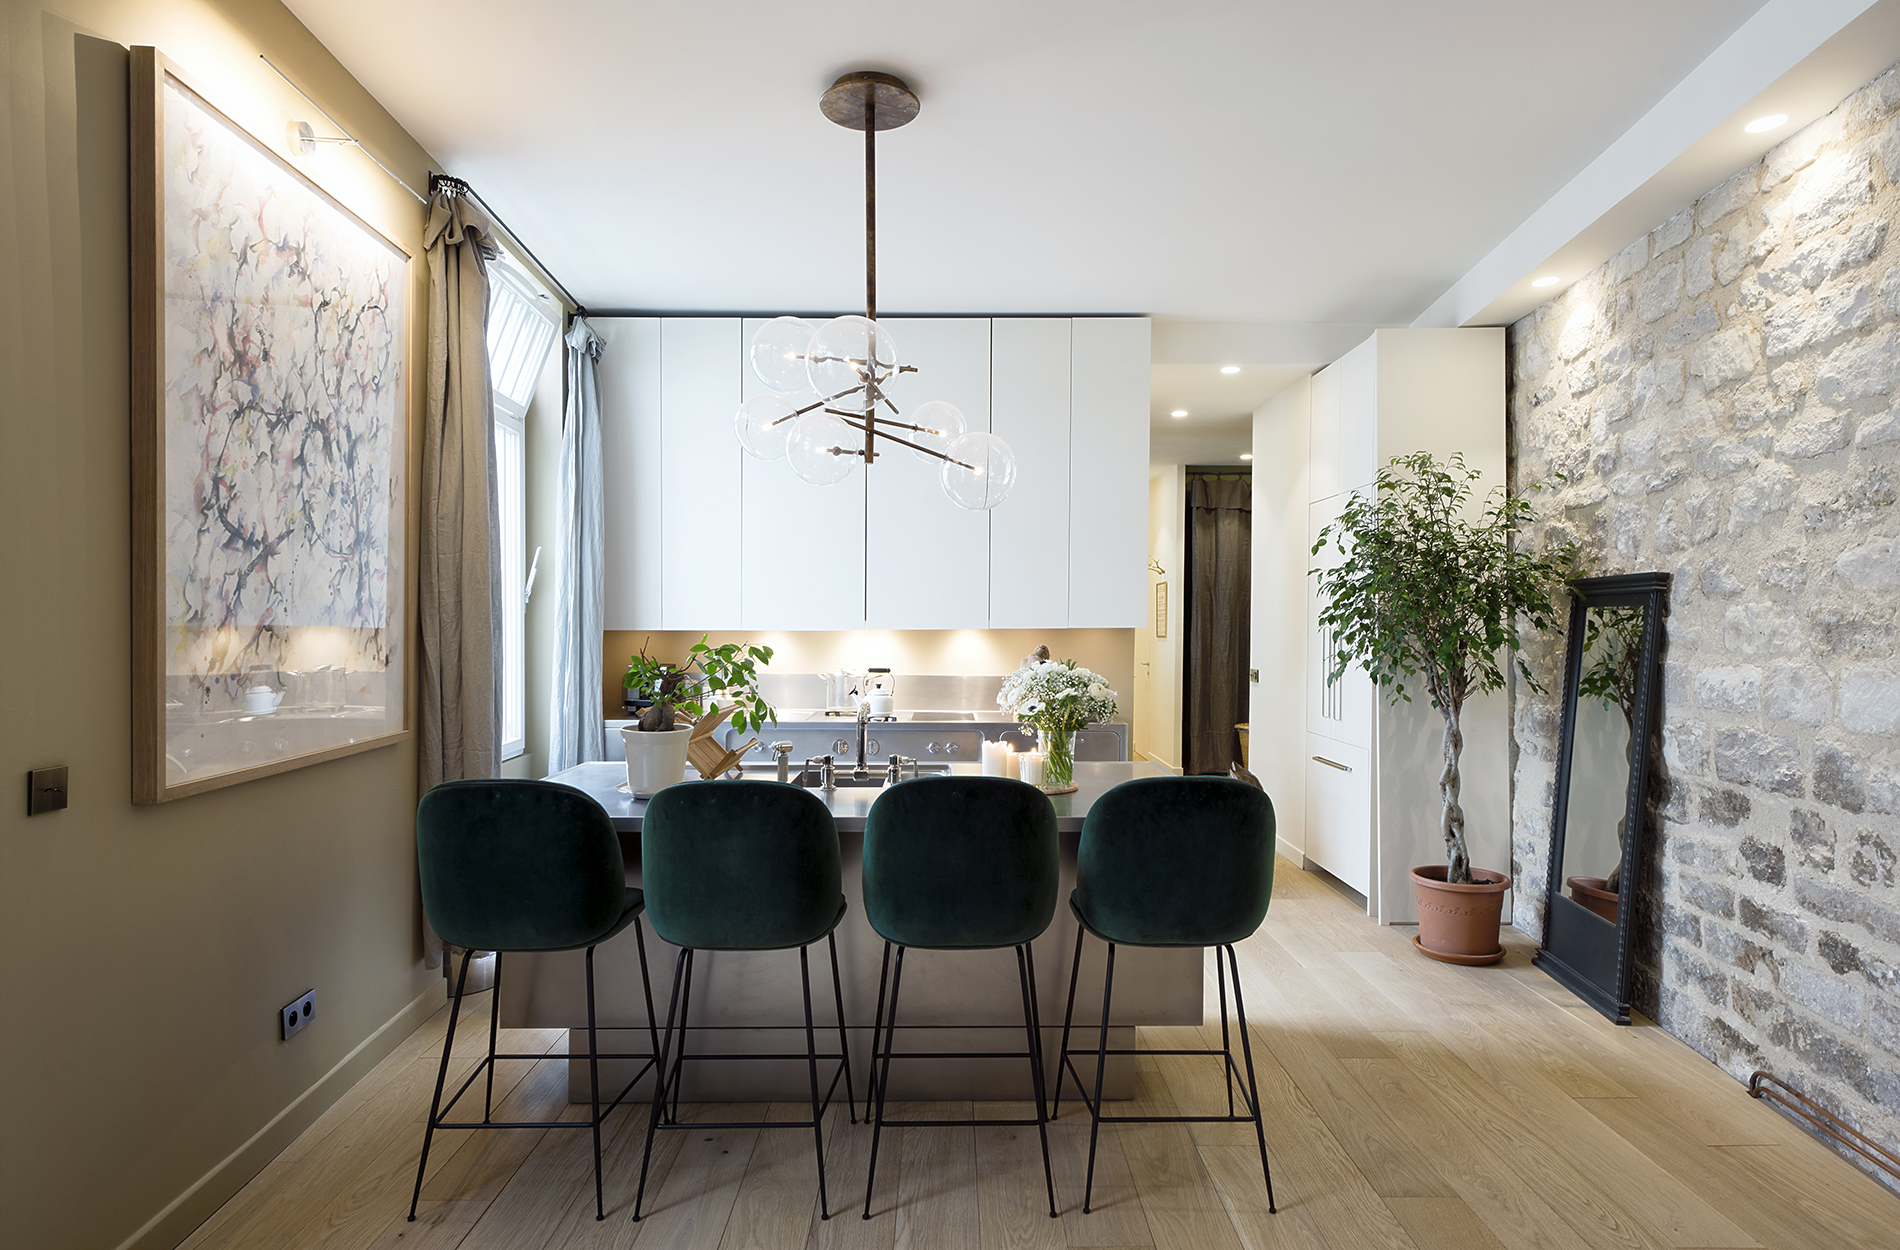 Mid-Century Lighting Brings Life to Apartment in Romantic Paris mid-century lighting Mid-Century Lighting Brings Life to Apartment in Romantic Paris Mid Century Lighting Brings Life to Apartment in Romantic Paris 6